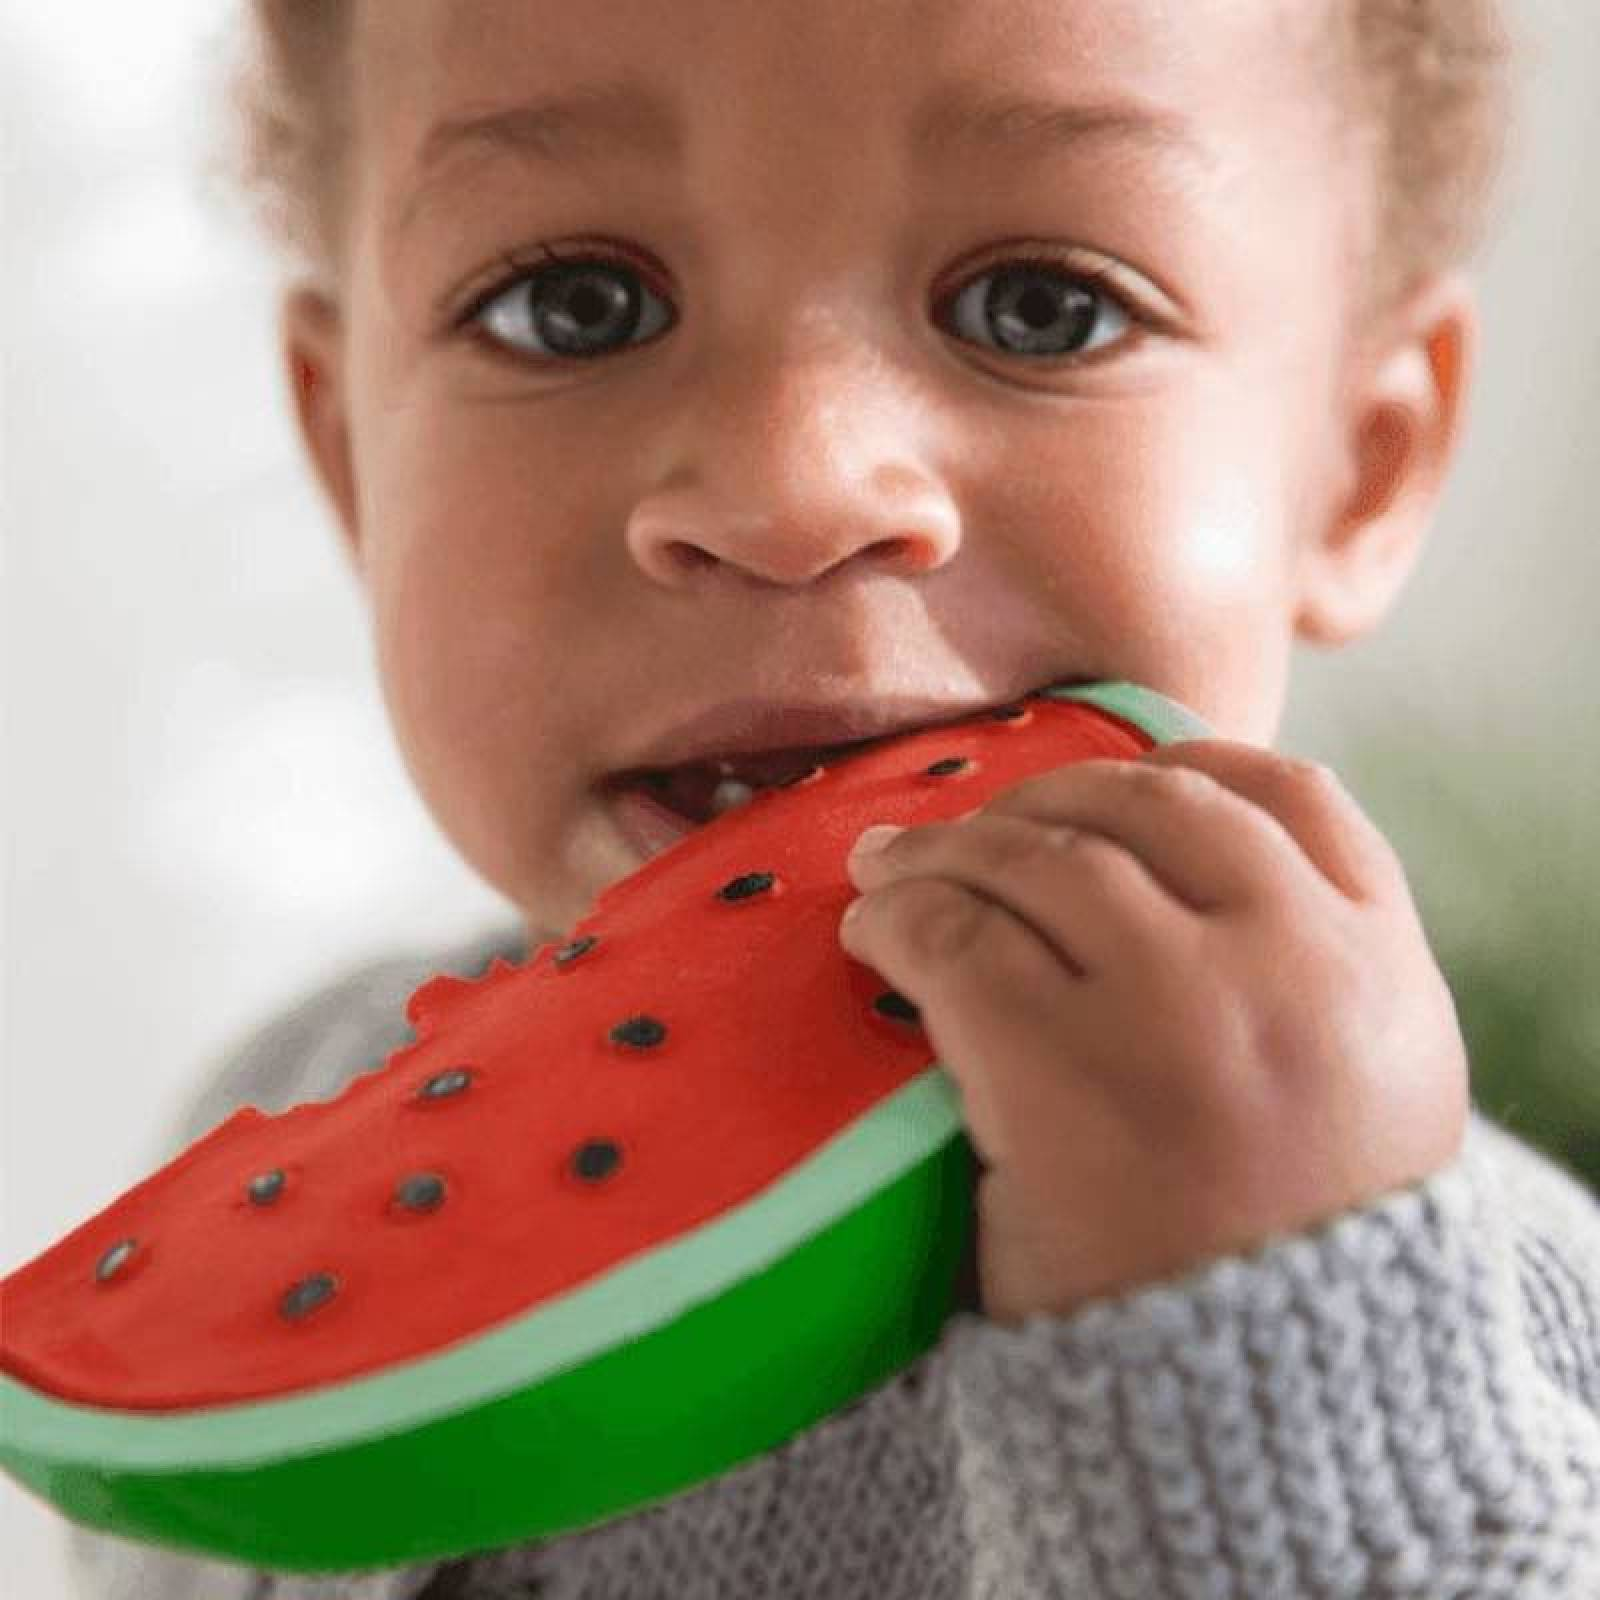 Wally The Watermelon - Natural Rubber Teething Toy 0+